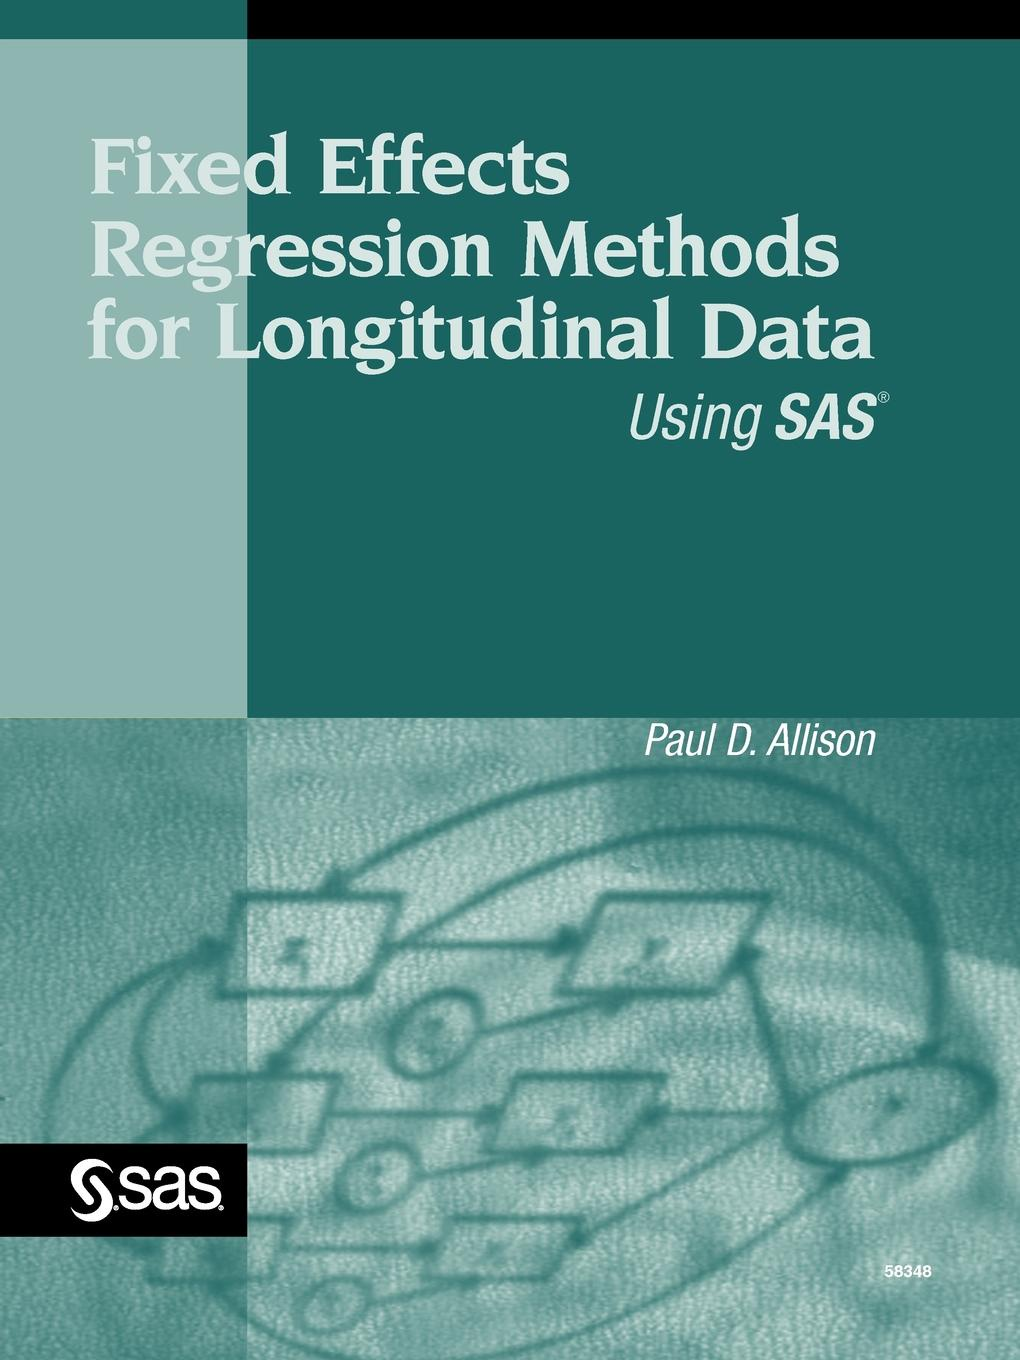 Paul D. Allison Fixed Effects Regression Methods for Longitudinal Data Using SAS